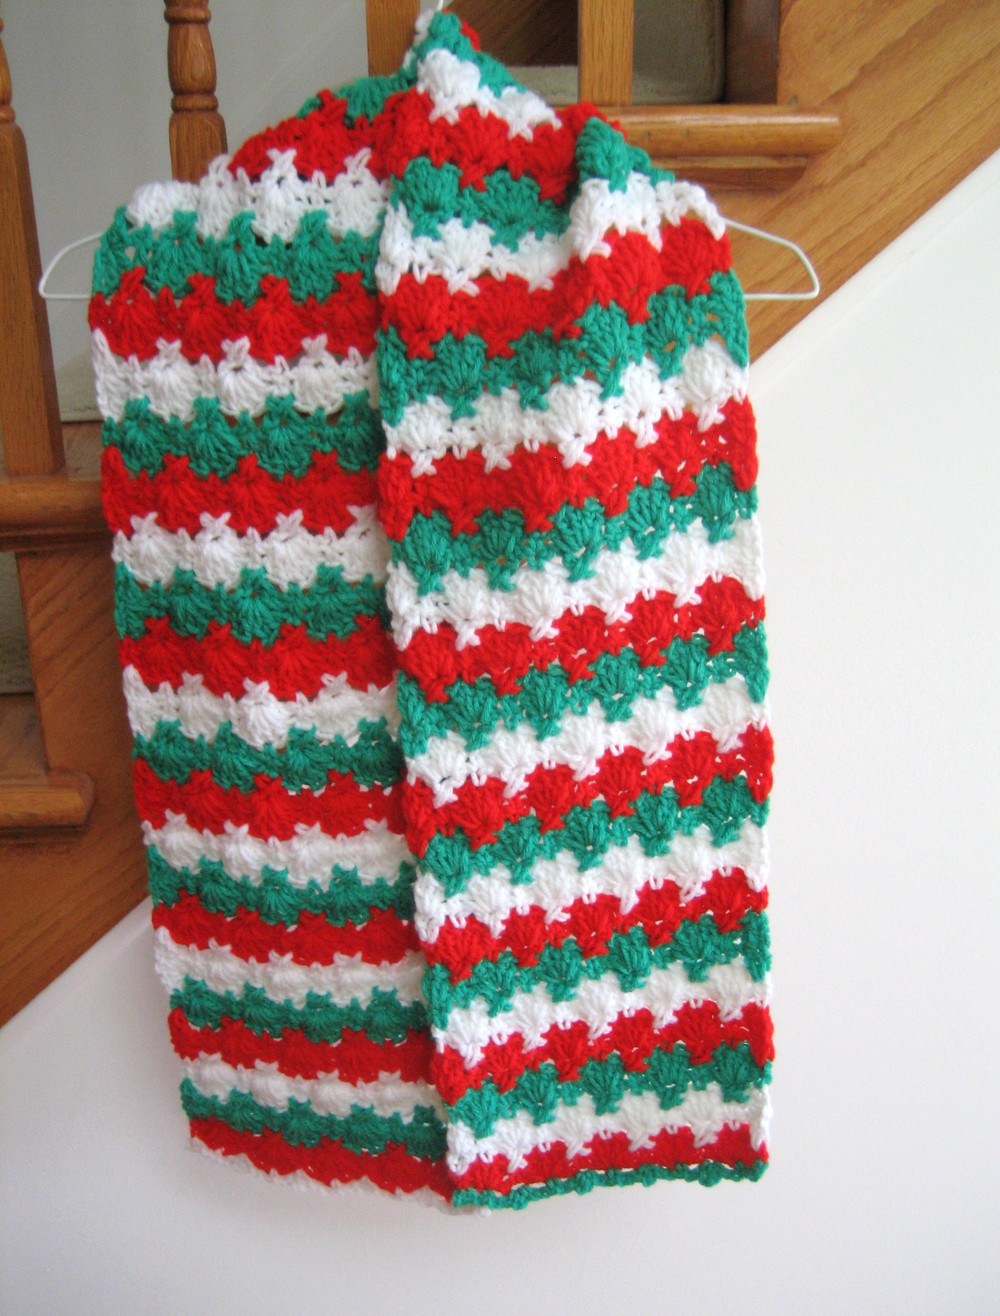 Holiday Criss Cross Crocheted Scarf Pattern FaveCrafts.com